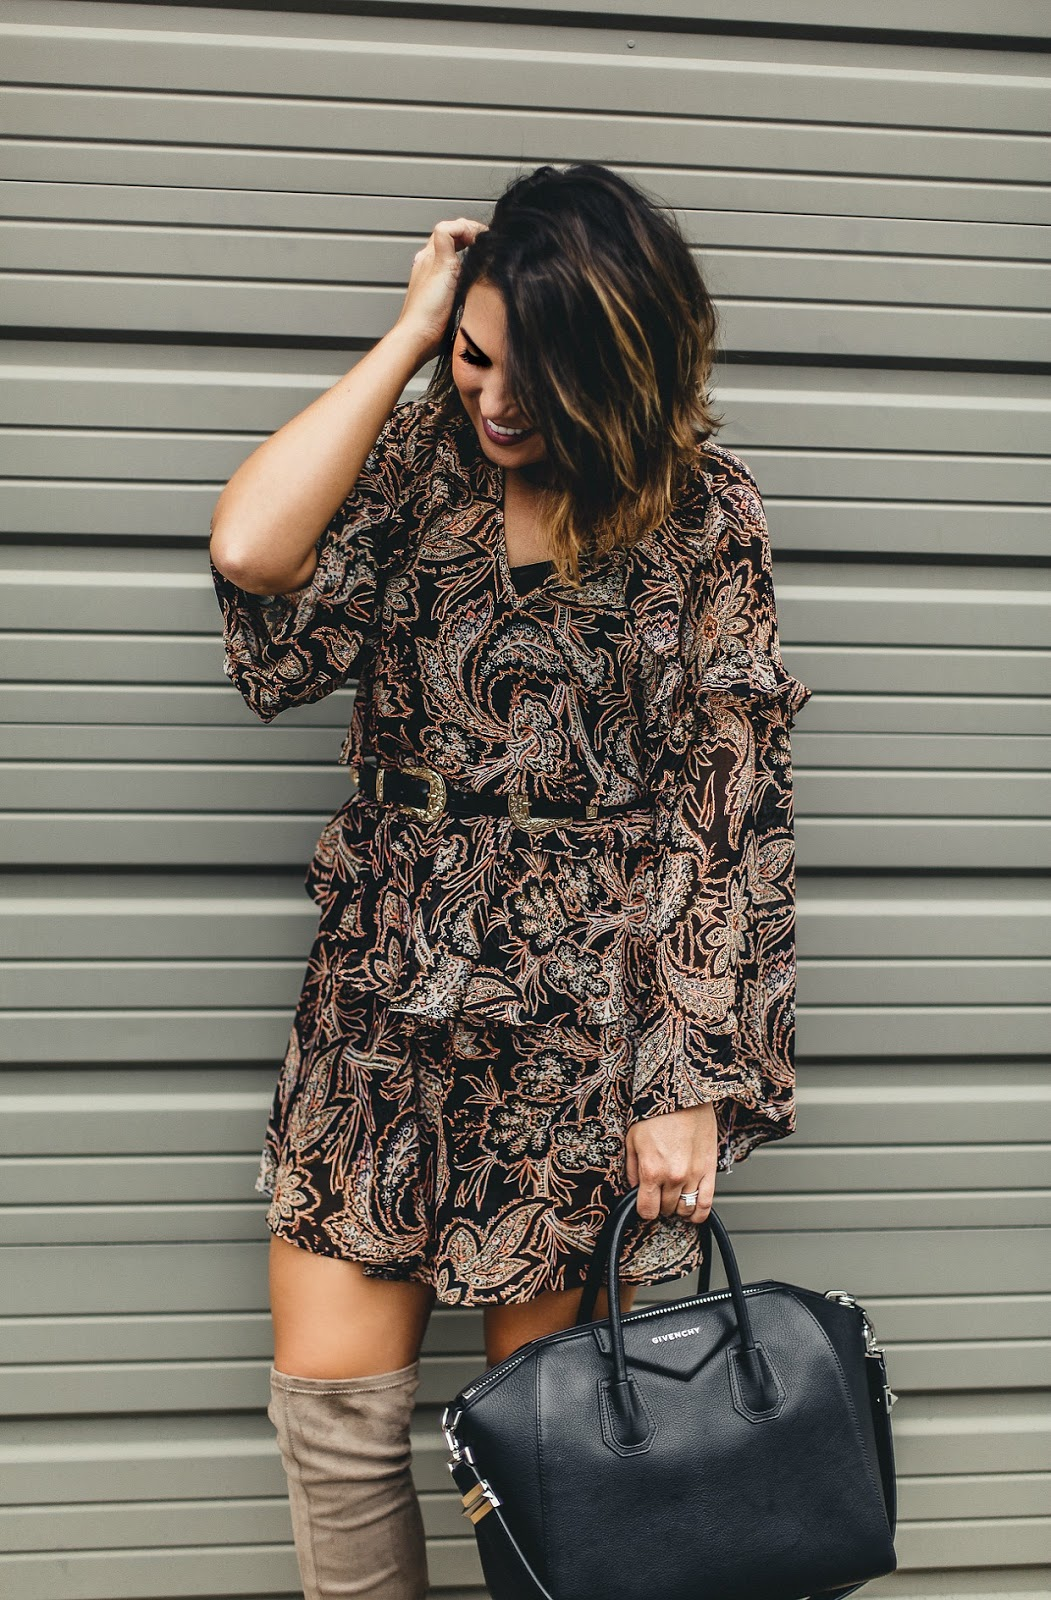 ruffle chiffon dress, nordstrom dress, over the knee boots, over the knee boots with dress, xo samantha brooke, life and messy hair